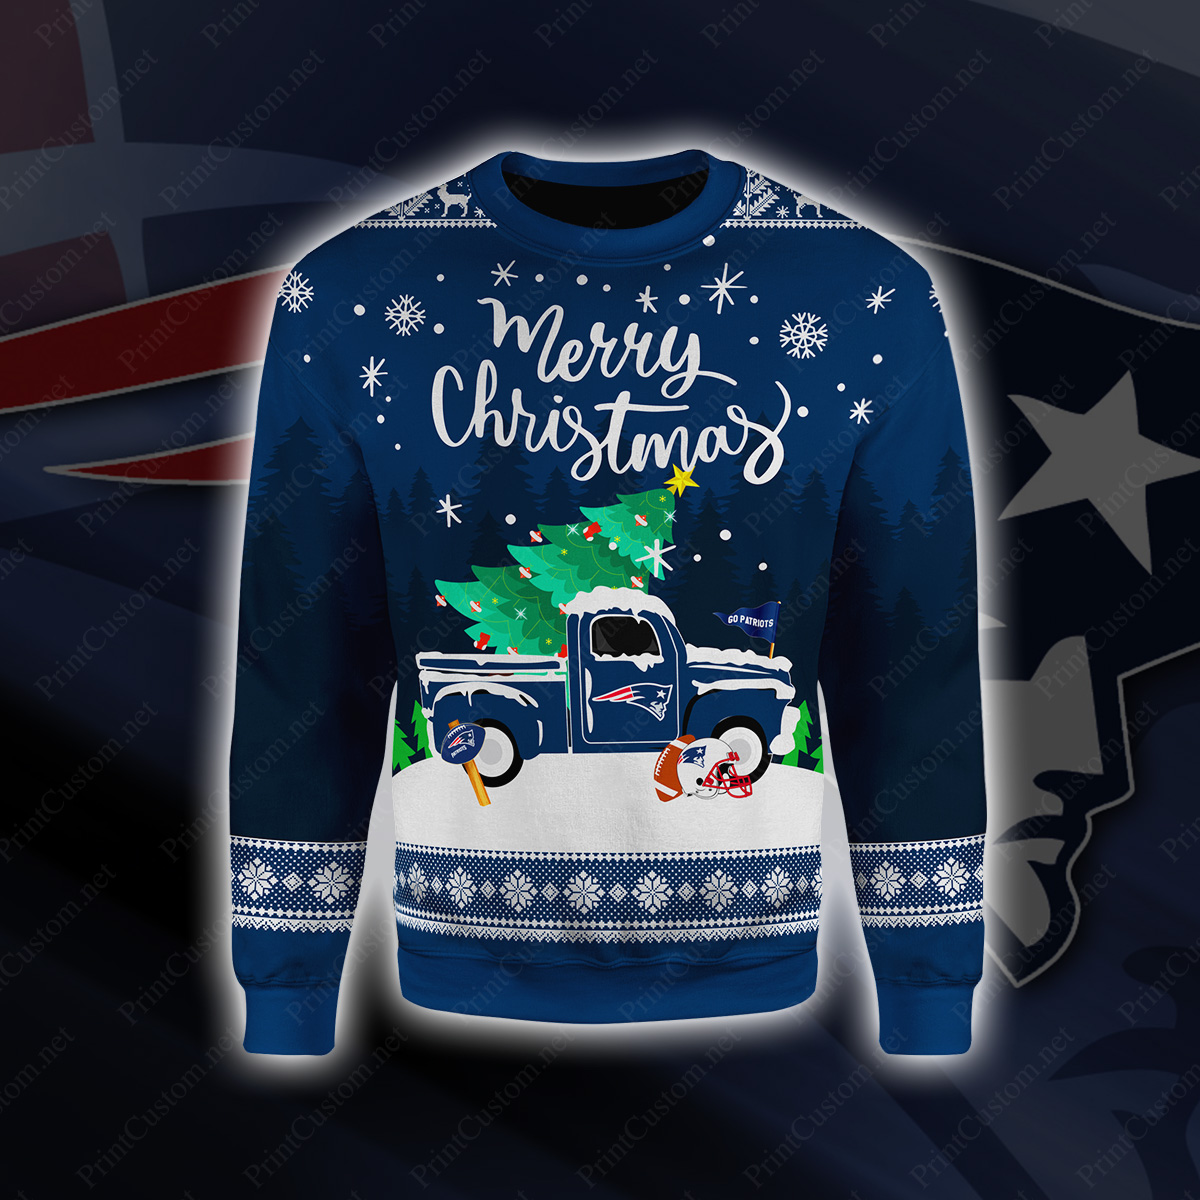 New england patriots merry christmas full printing sweater